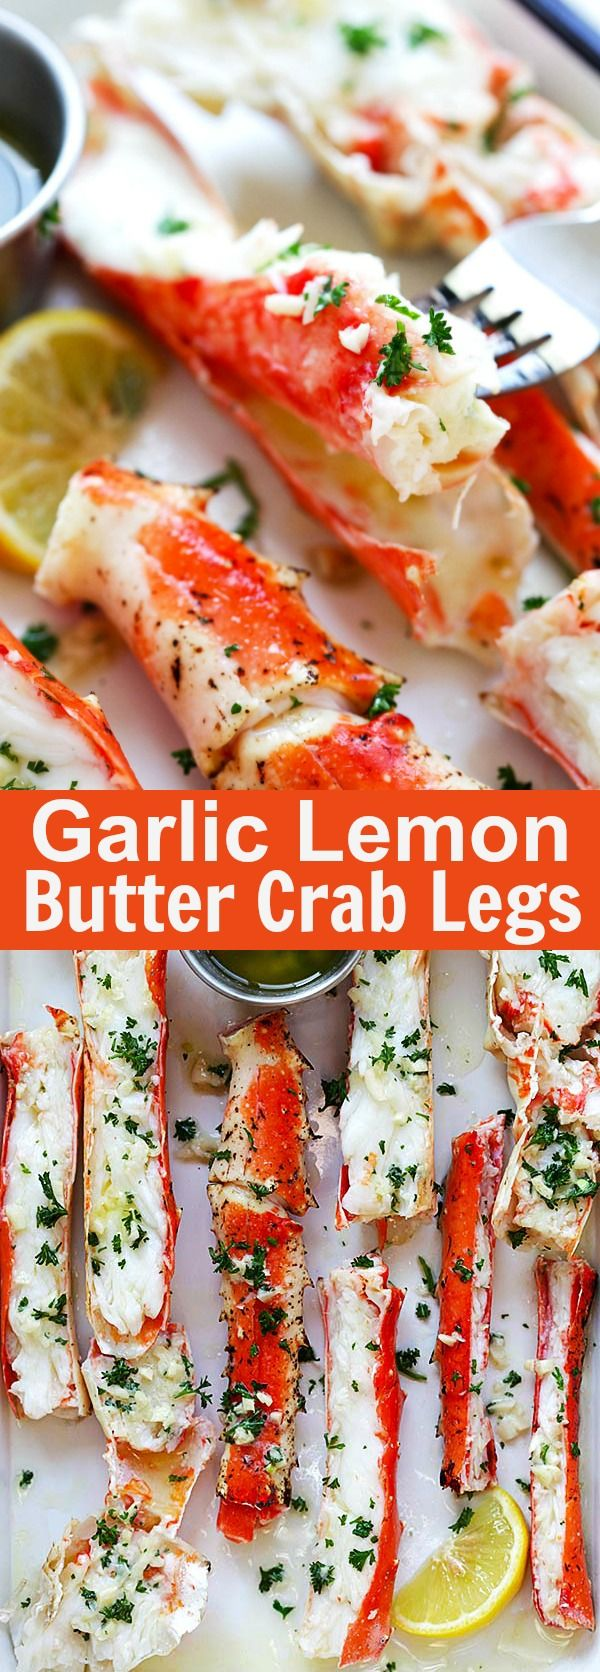 Garlic Lemon Butter Crab Legs – crazy delicious king crab legs in garlic herb and lemon butter. This crab legs recipe is so good you want it everyday | rasamalaysia.com